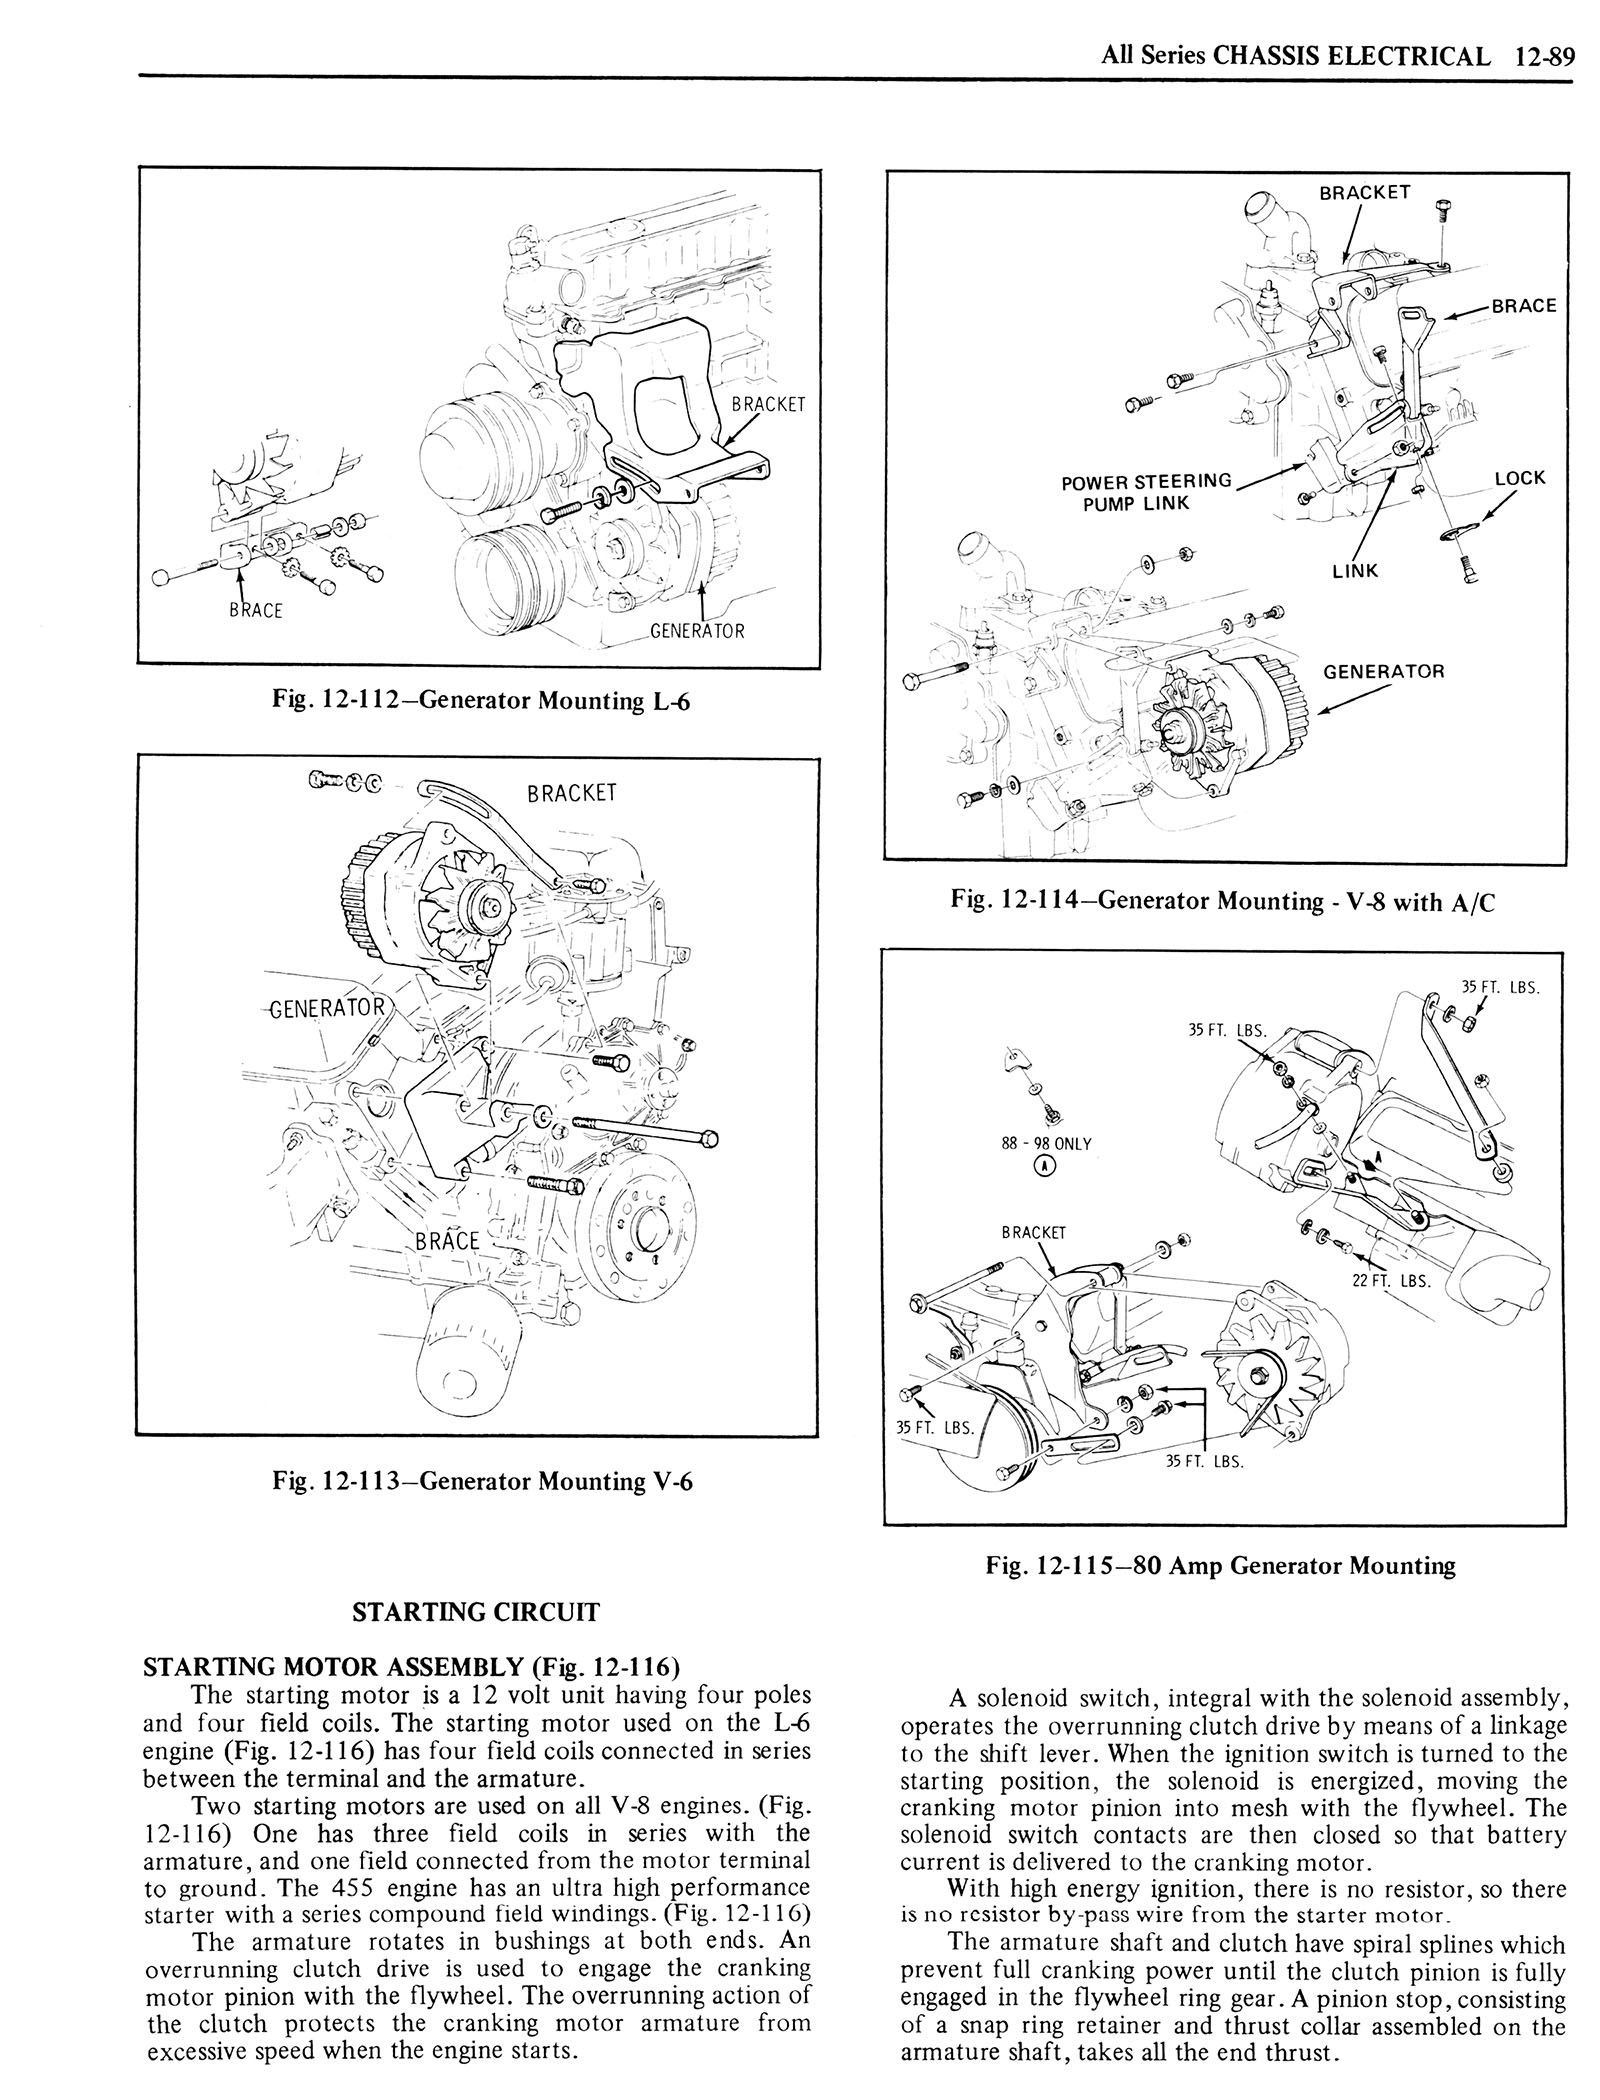 1976 Oldsmobile Service Manual page 1209 of 1390